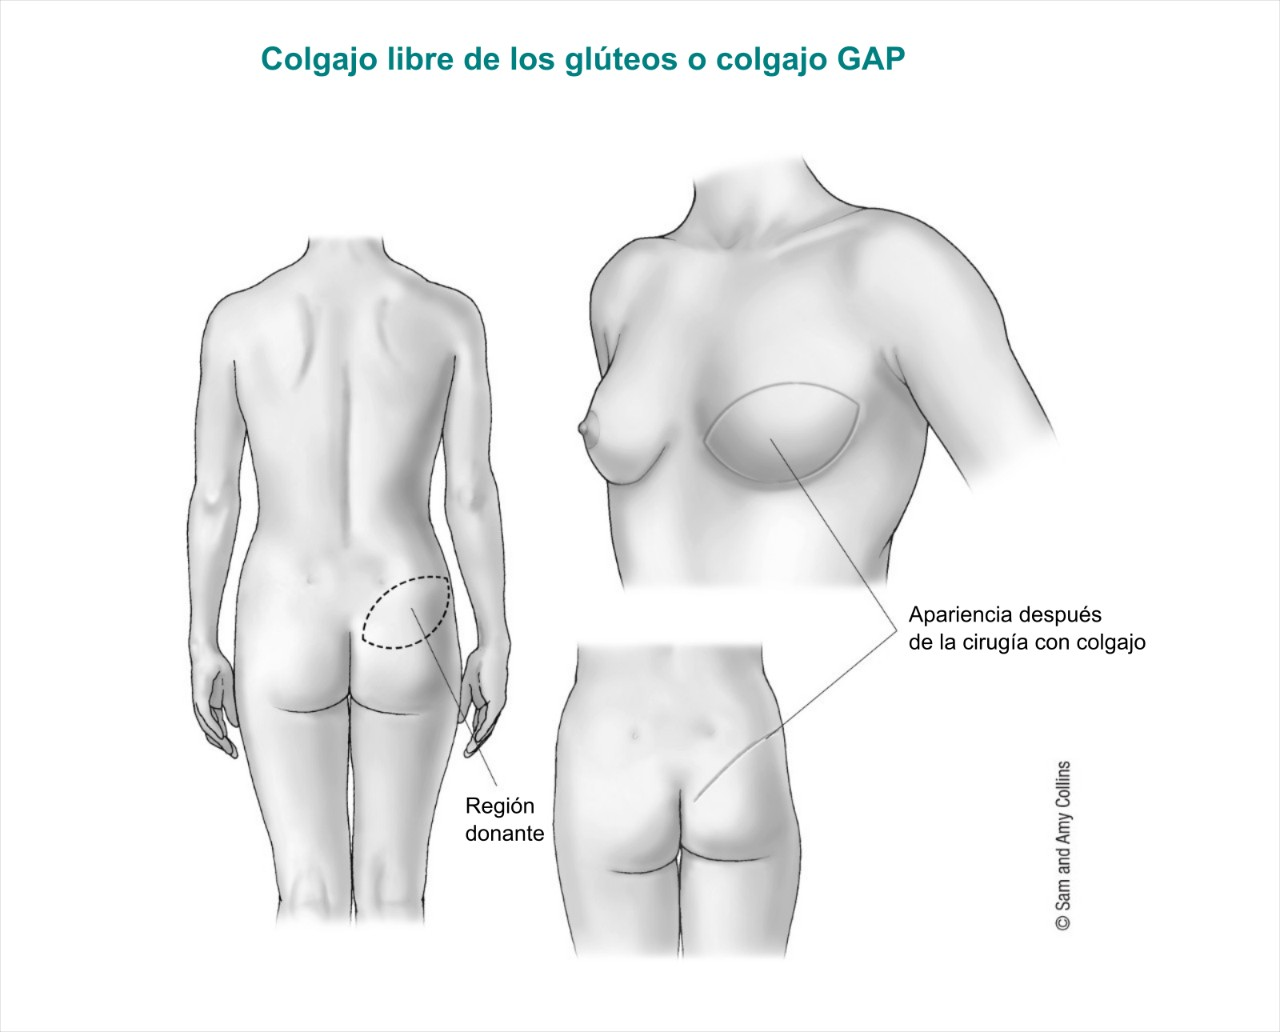 Gluteal free flap or GaP flap Spanish 2017